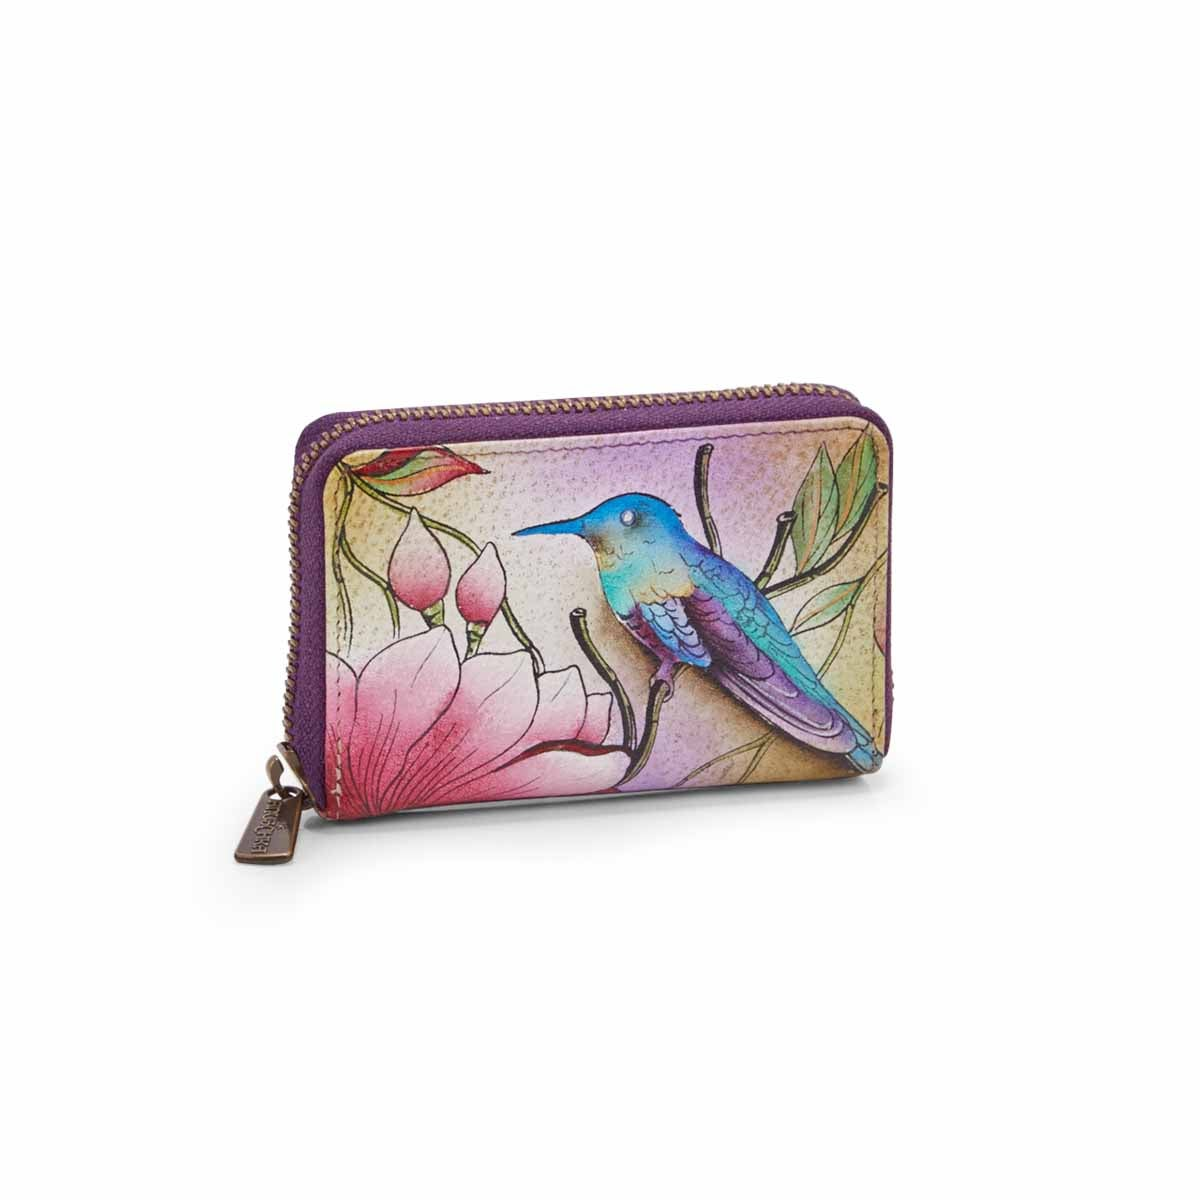 Women's SPRING PASSION card holder